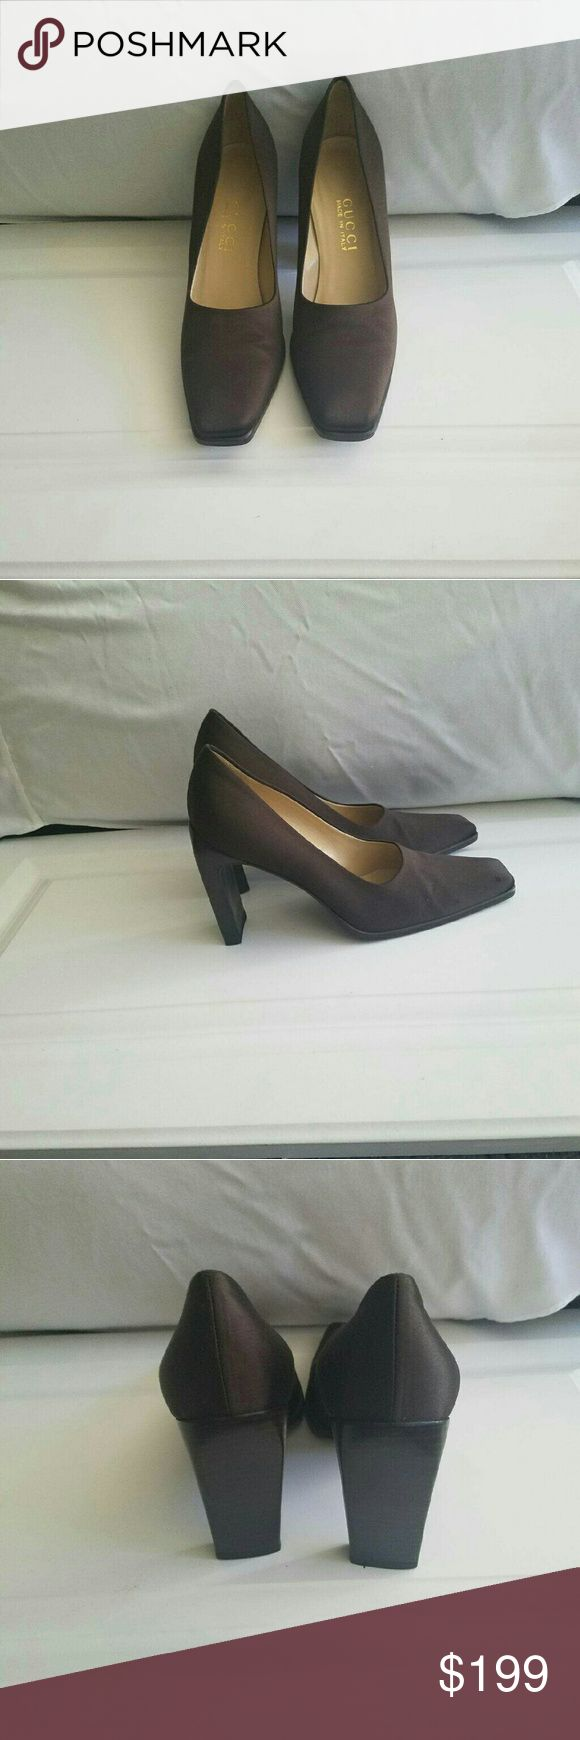 Gucci satin dark brown shoes size 7 1/2 B Used  but in really good condition   I have changed hills on them &had soles cleaned they do show wear have few scraches I belive only 4 that I can see including pict of  most visible 2  on the toes  of both shoes  in my mind this are preaty minor   this shoes have a lot of good years left on them. They satin  deep reach brown color marking them way down cose of the few scraches they have Gucci Shoes Heels